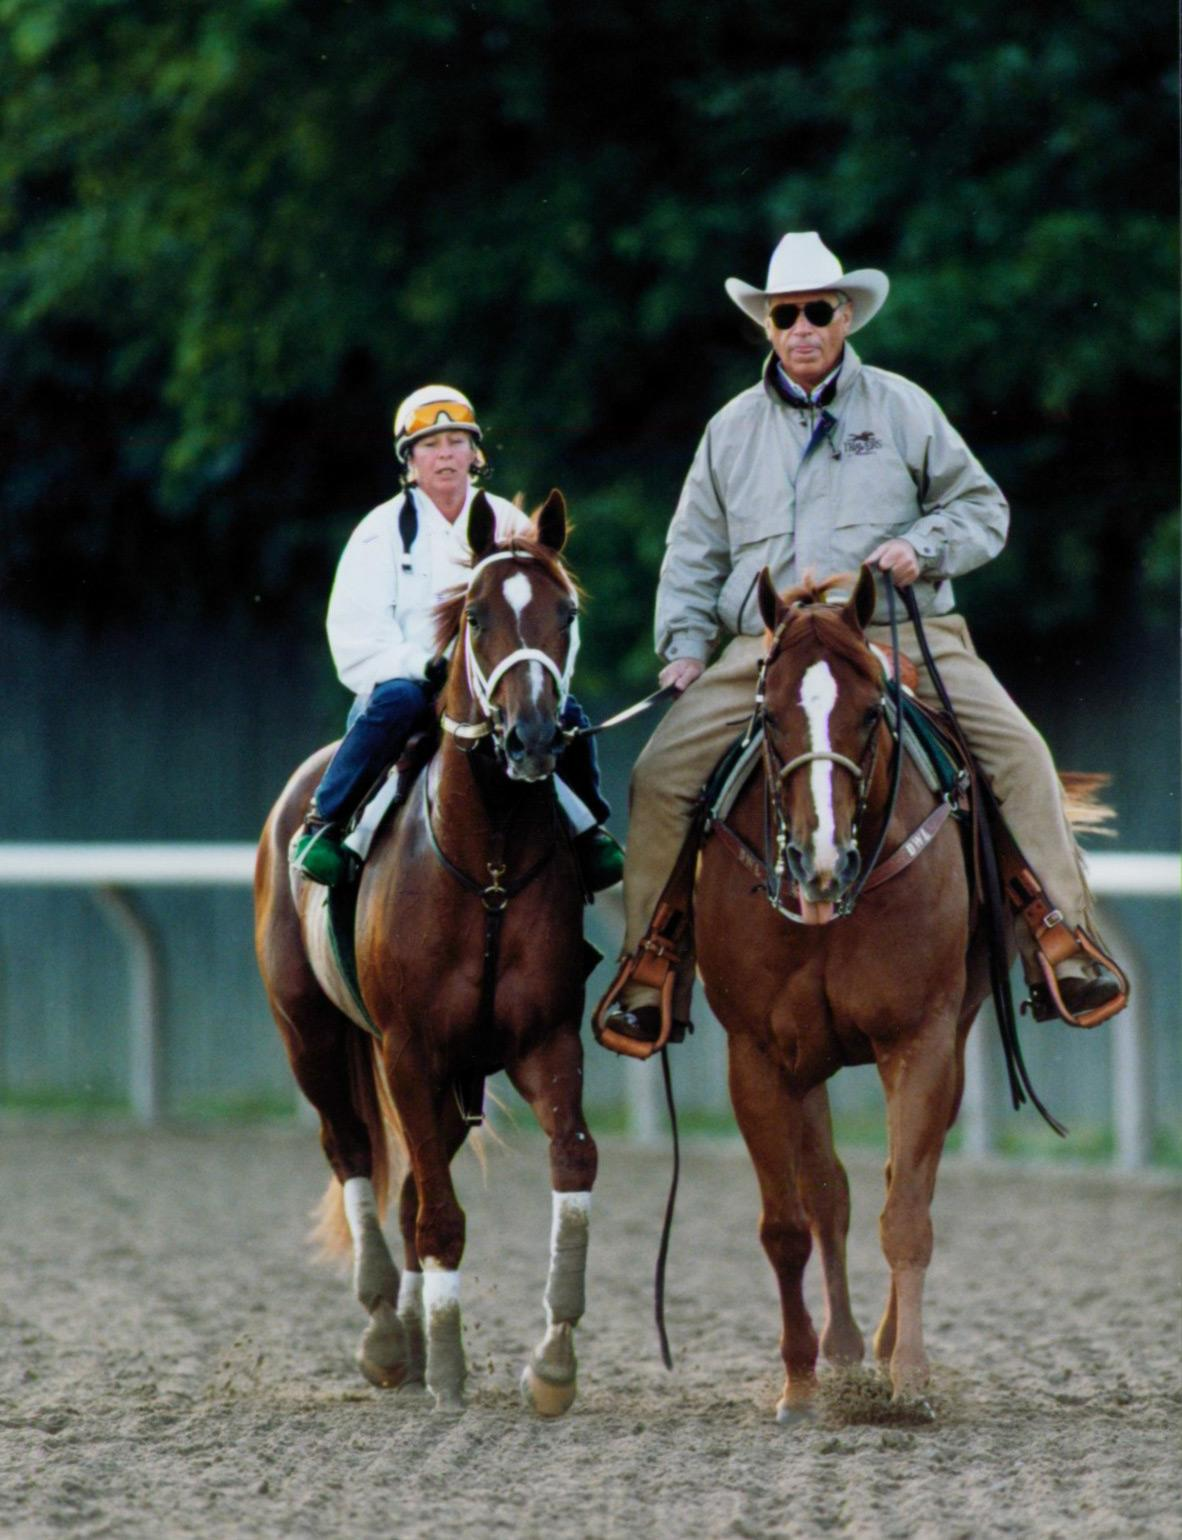 Charismatic and D. Wayne Lukas